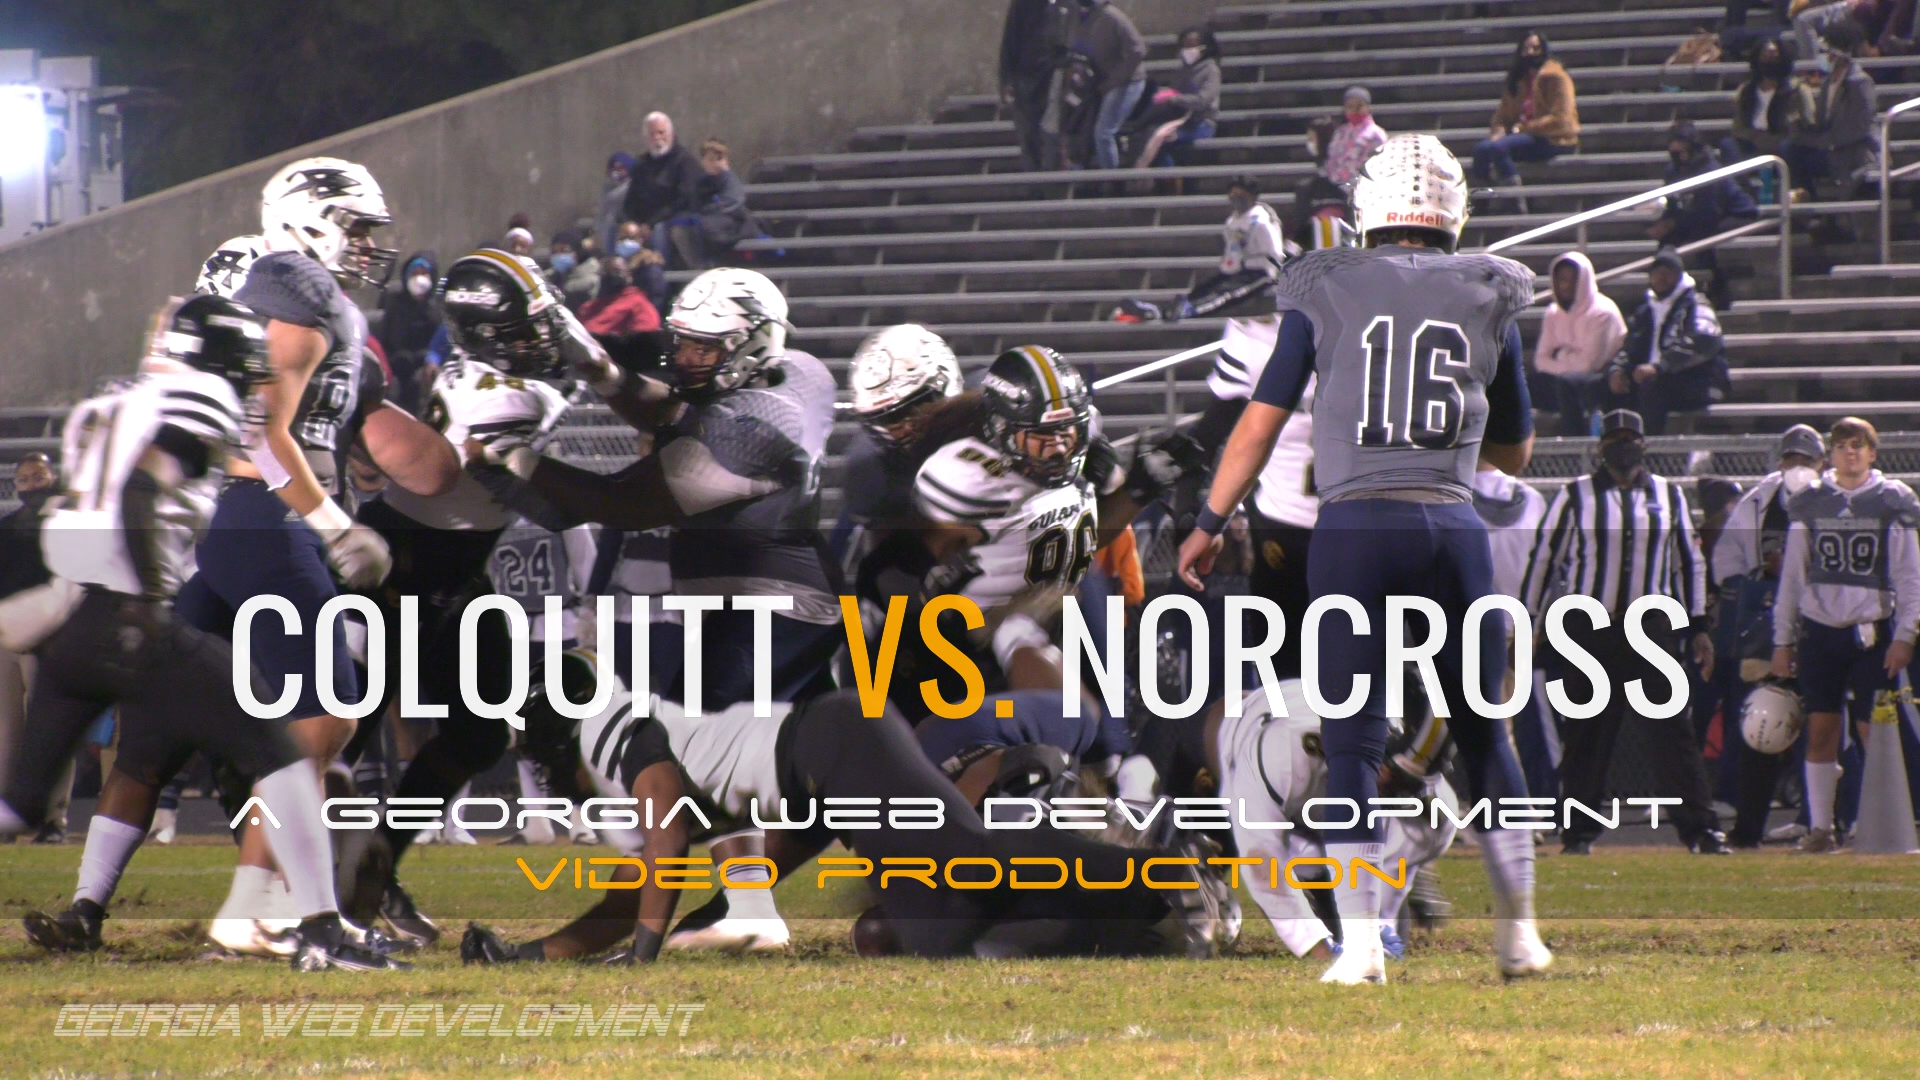 colquitt vs. norcross state playoffs 2020